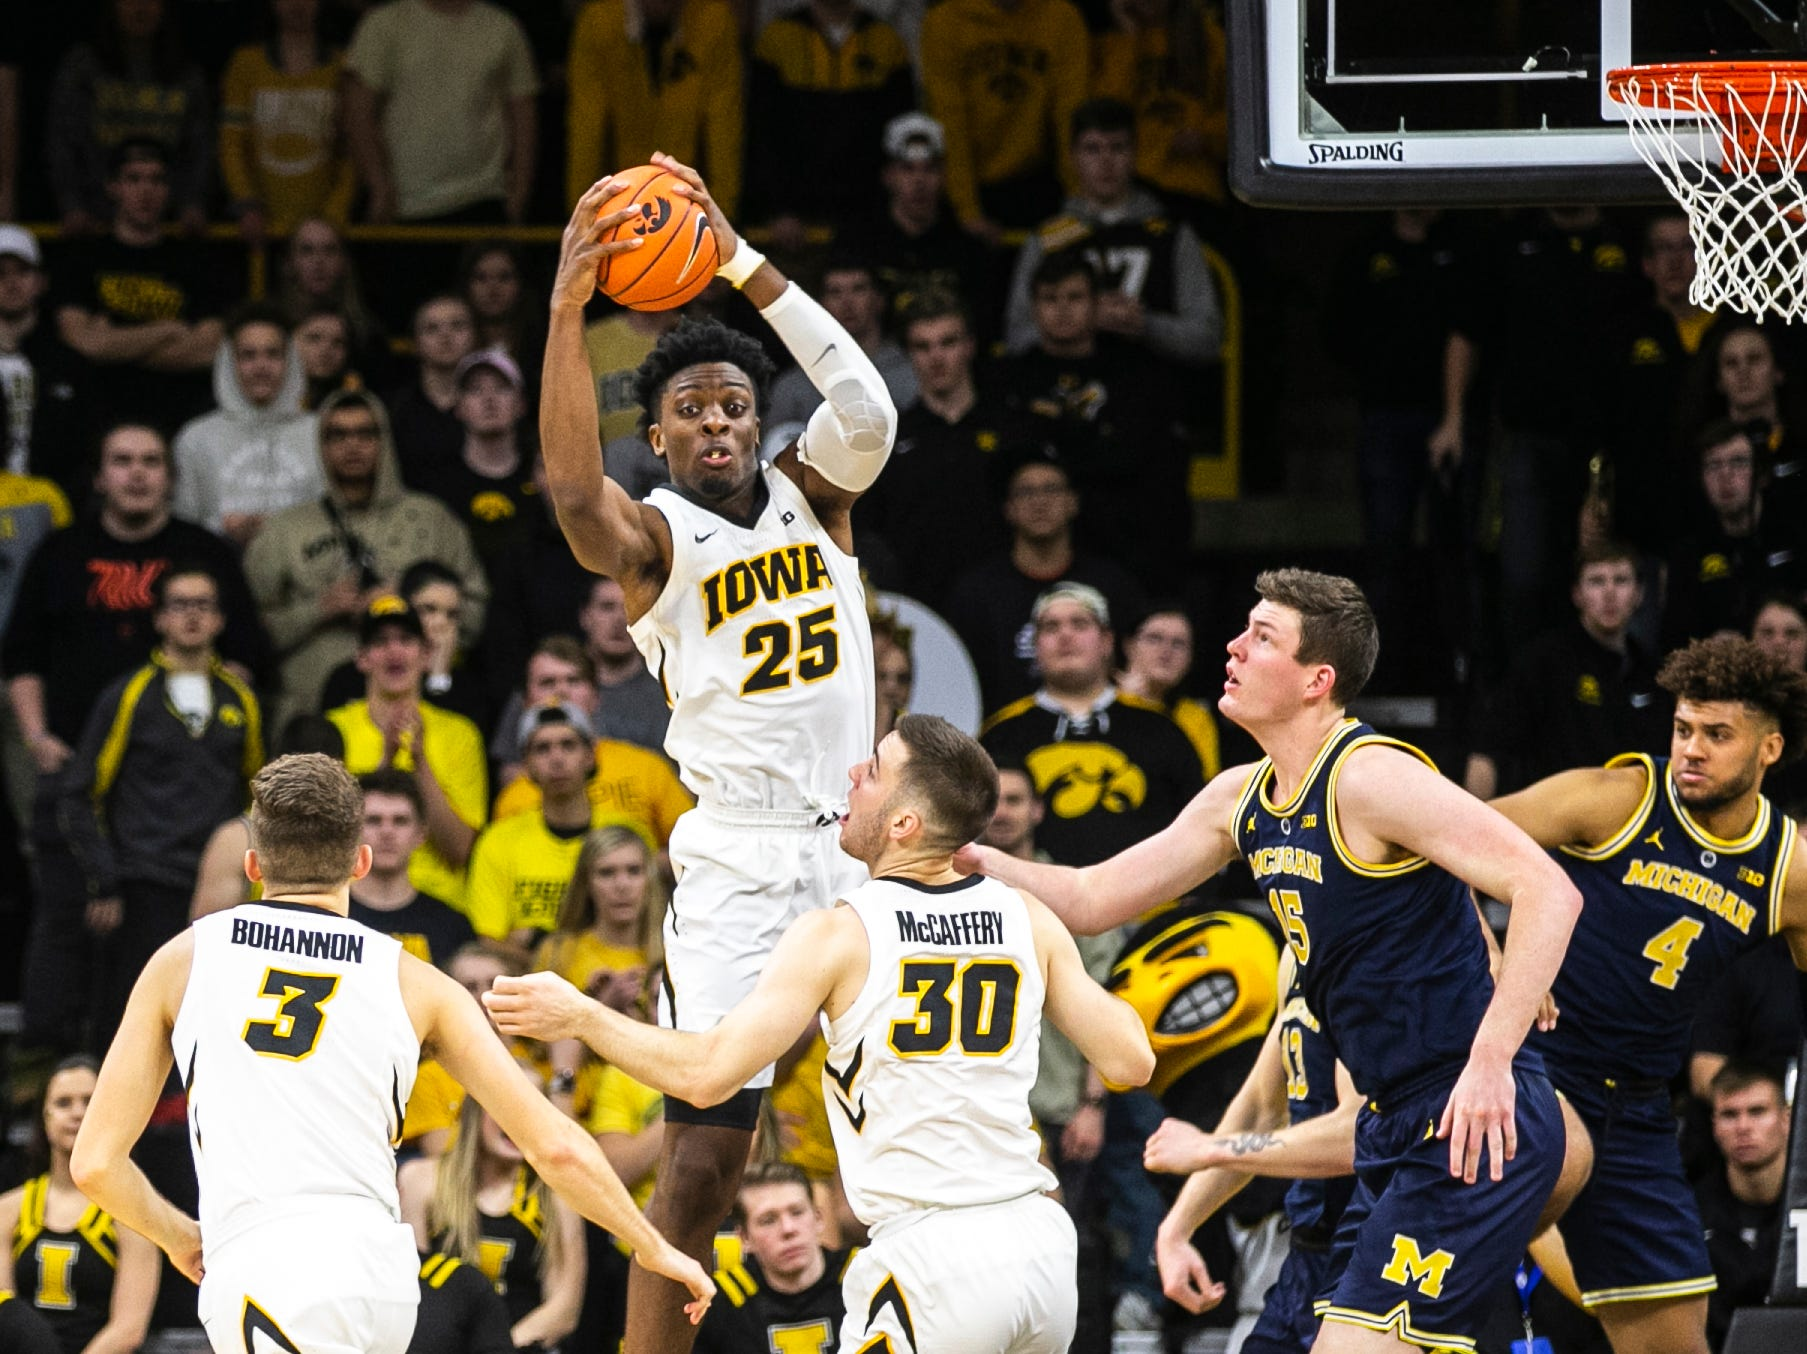 Iowa forward Tyler Cook (25) grabs a rebound away from Michigan forward Ignas Brazdeikis (13) during a NCAA Big Ten Conference men's basketball game on Friday, Feb. 1, 2019, at Carver-Hawkeye Arena in Iowa City, Iowa.